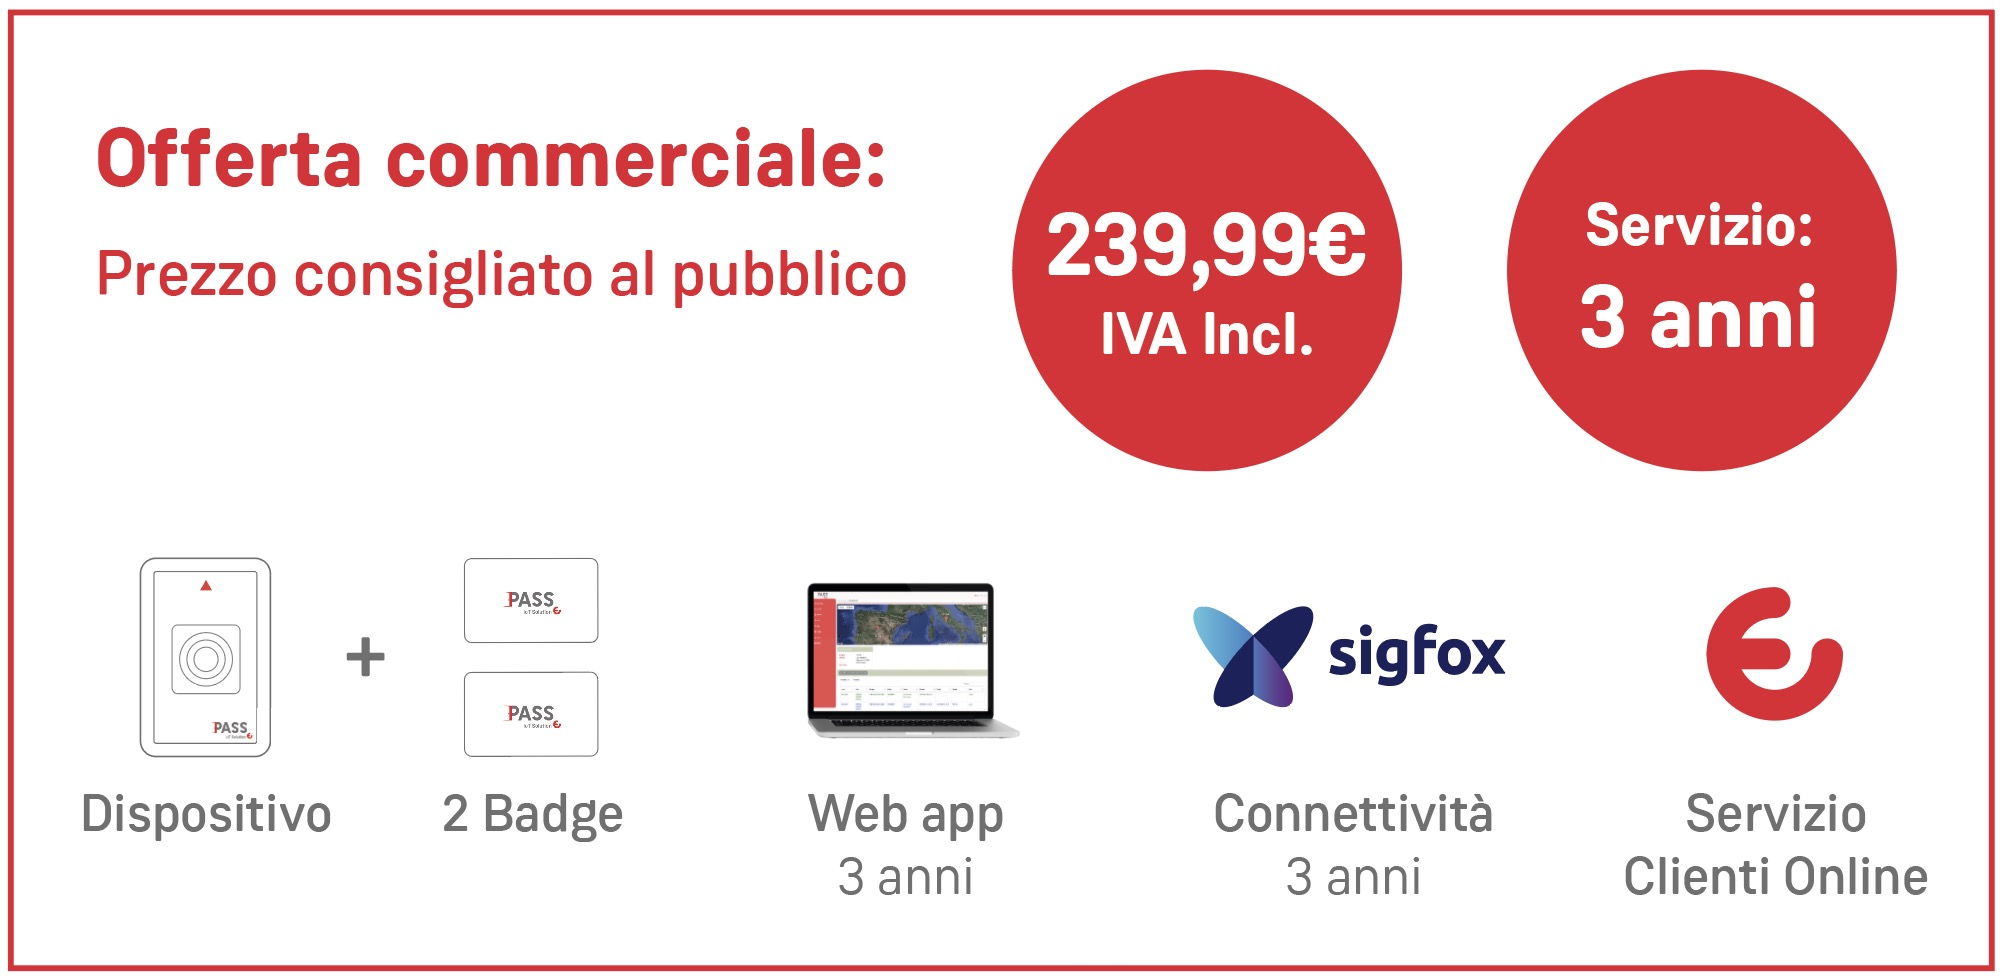 pass offerta commerciale